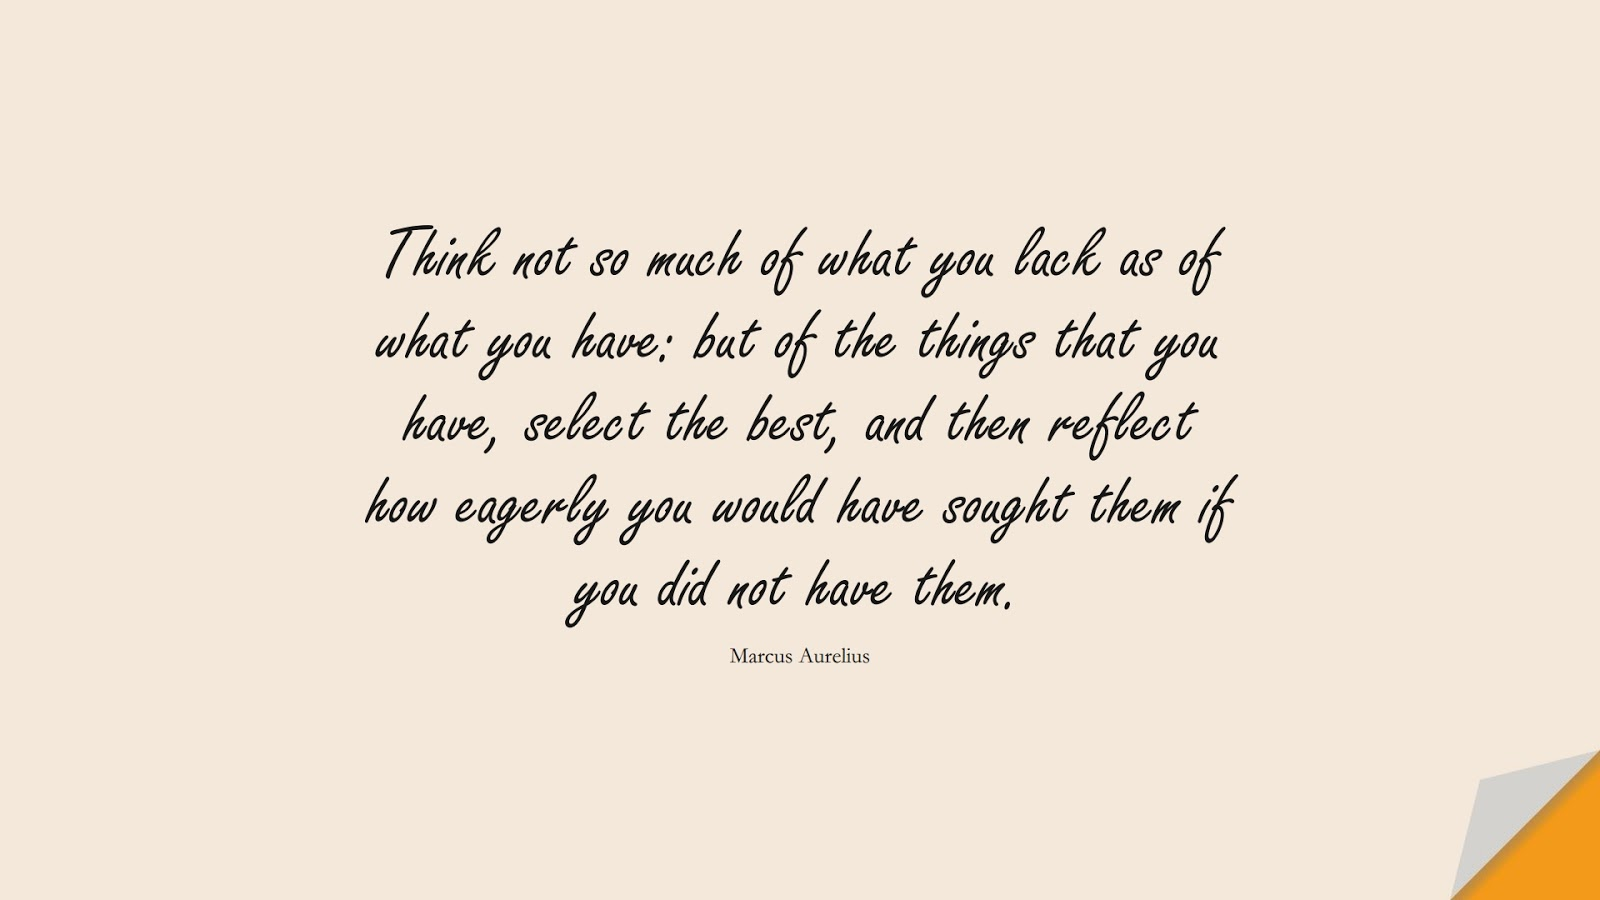 Think not so much of what you lack as of what you have: but of the things that you have, select the best, and then reflect how eagerly you would have sought them if you did not have them. (Marcus Aurelius);  #MarcusAureliusQuotes